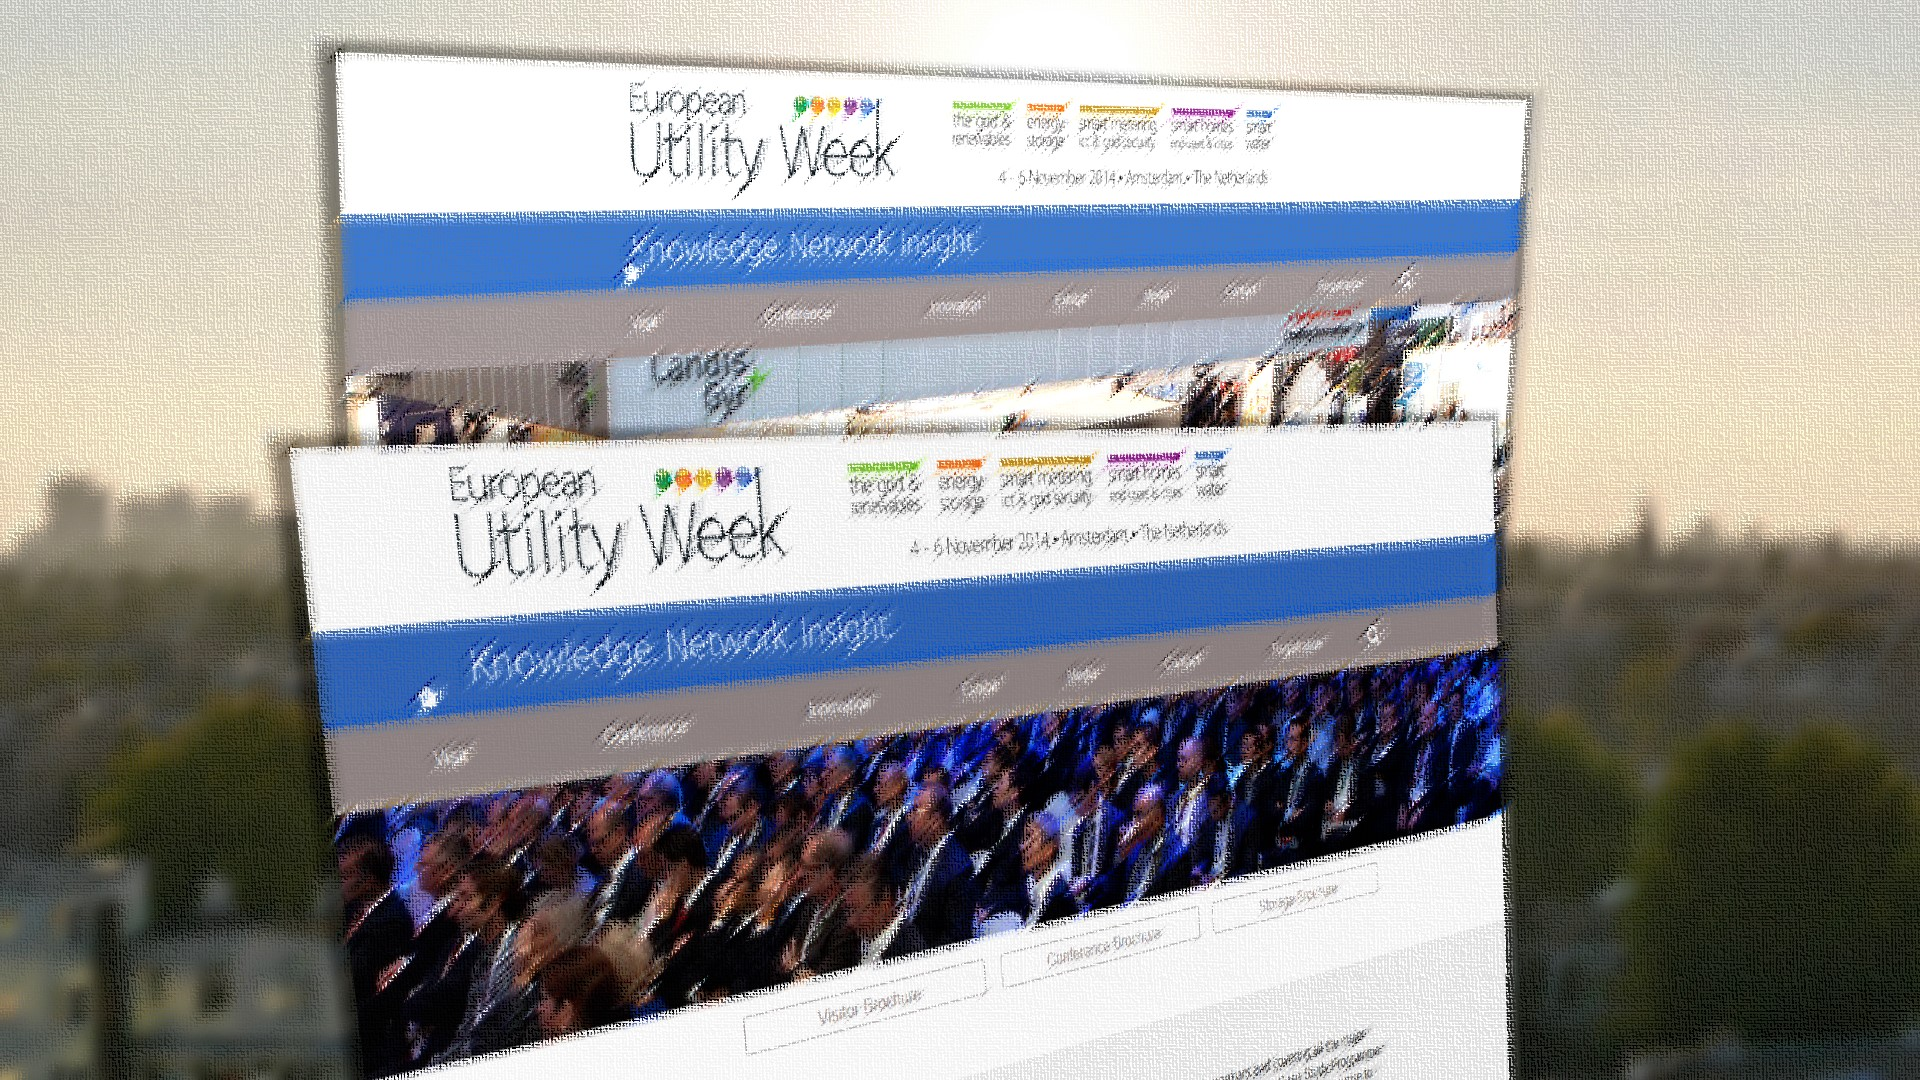 Utility Week in Amsterdam